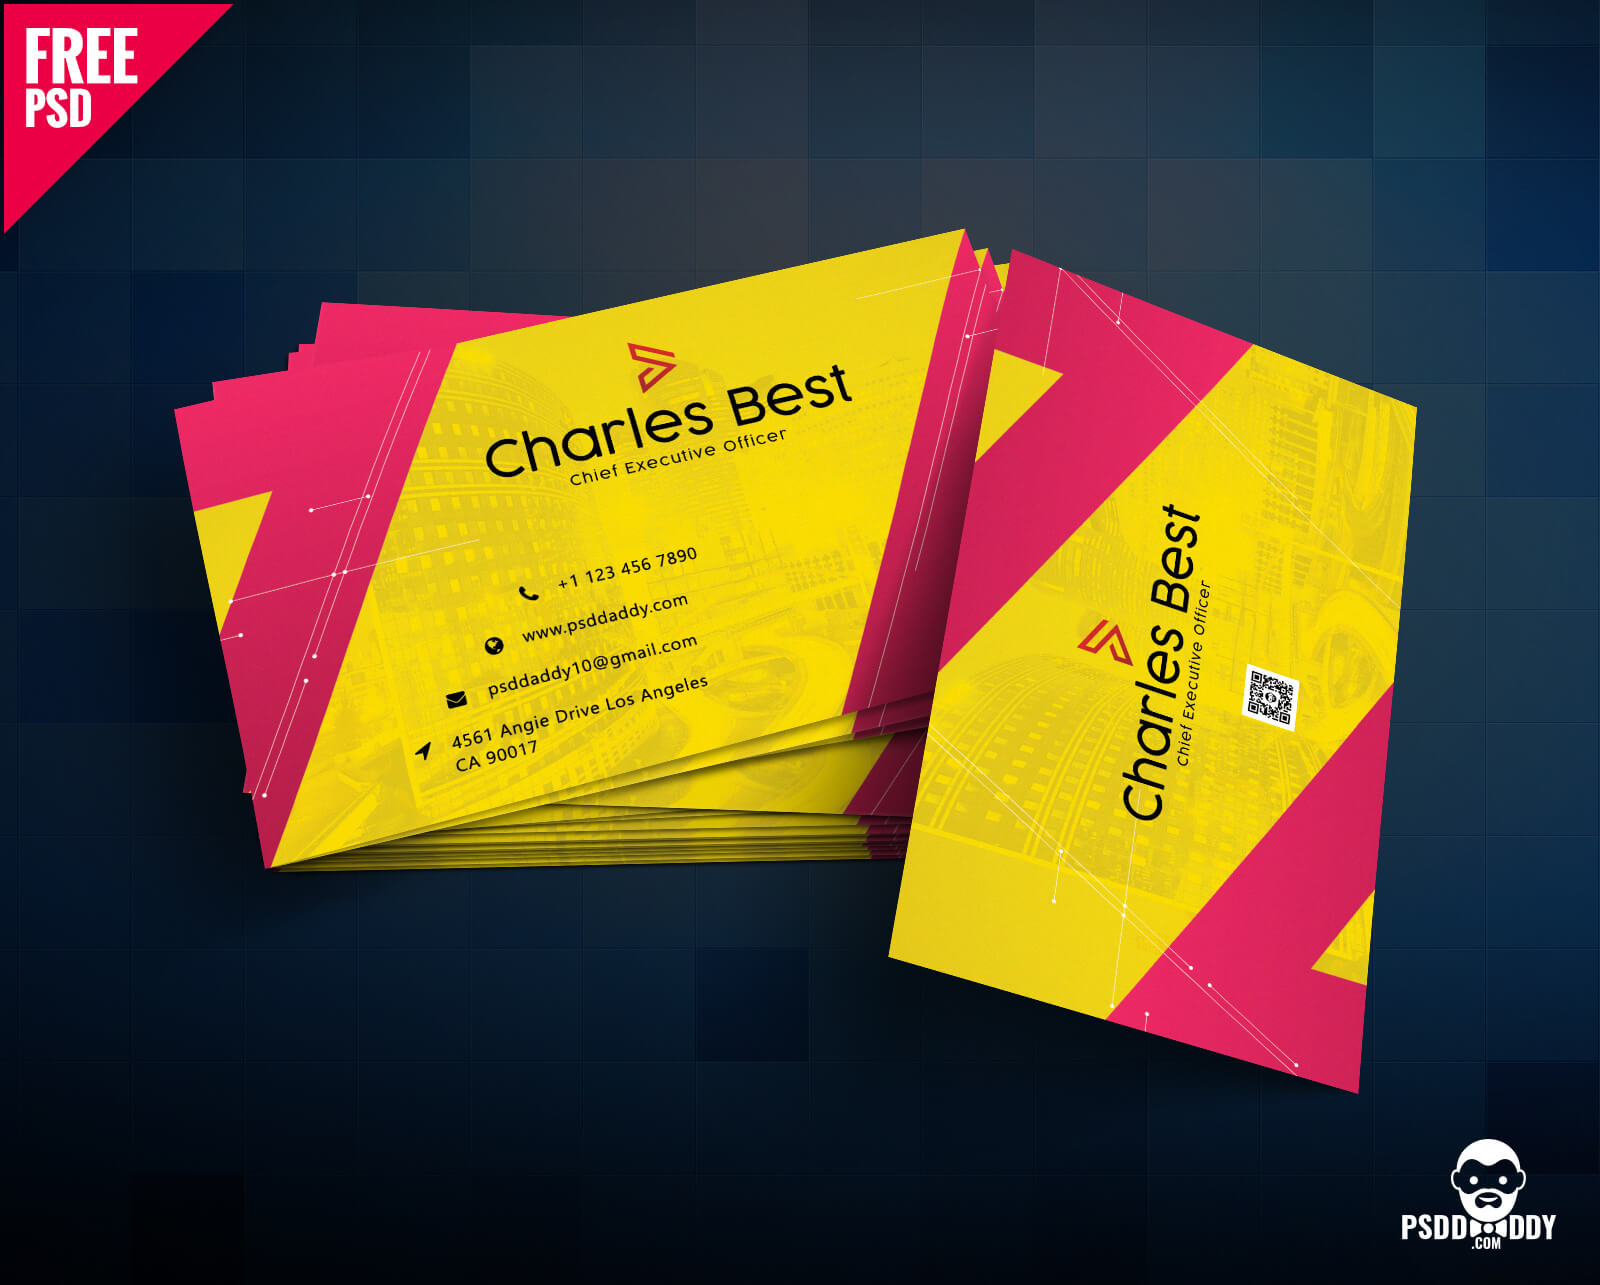 Download] Creative Business Card Free Psd | Psddaddy Inside Visiting Card Templates For Photoshop